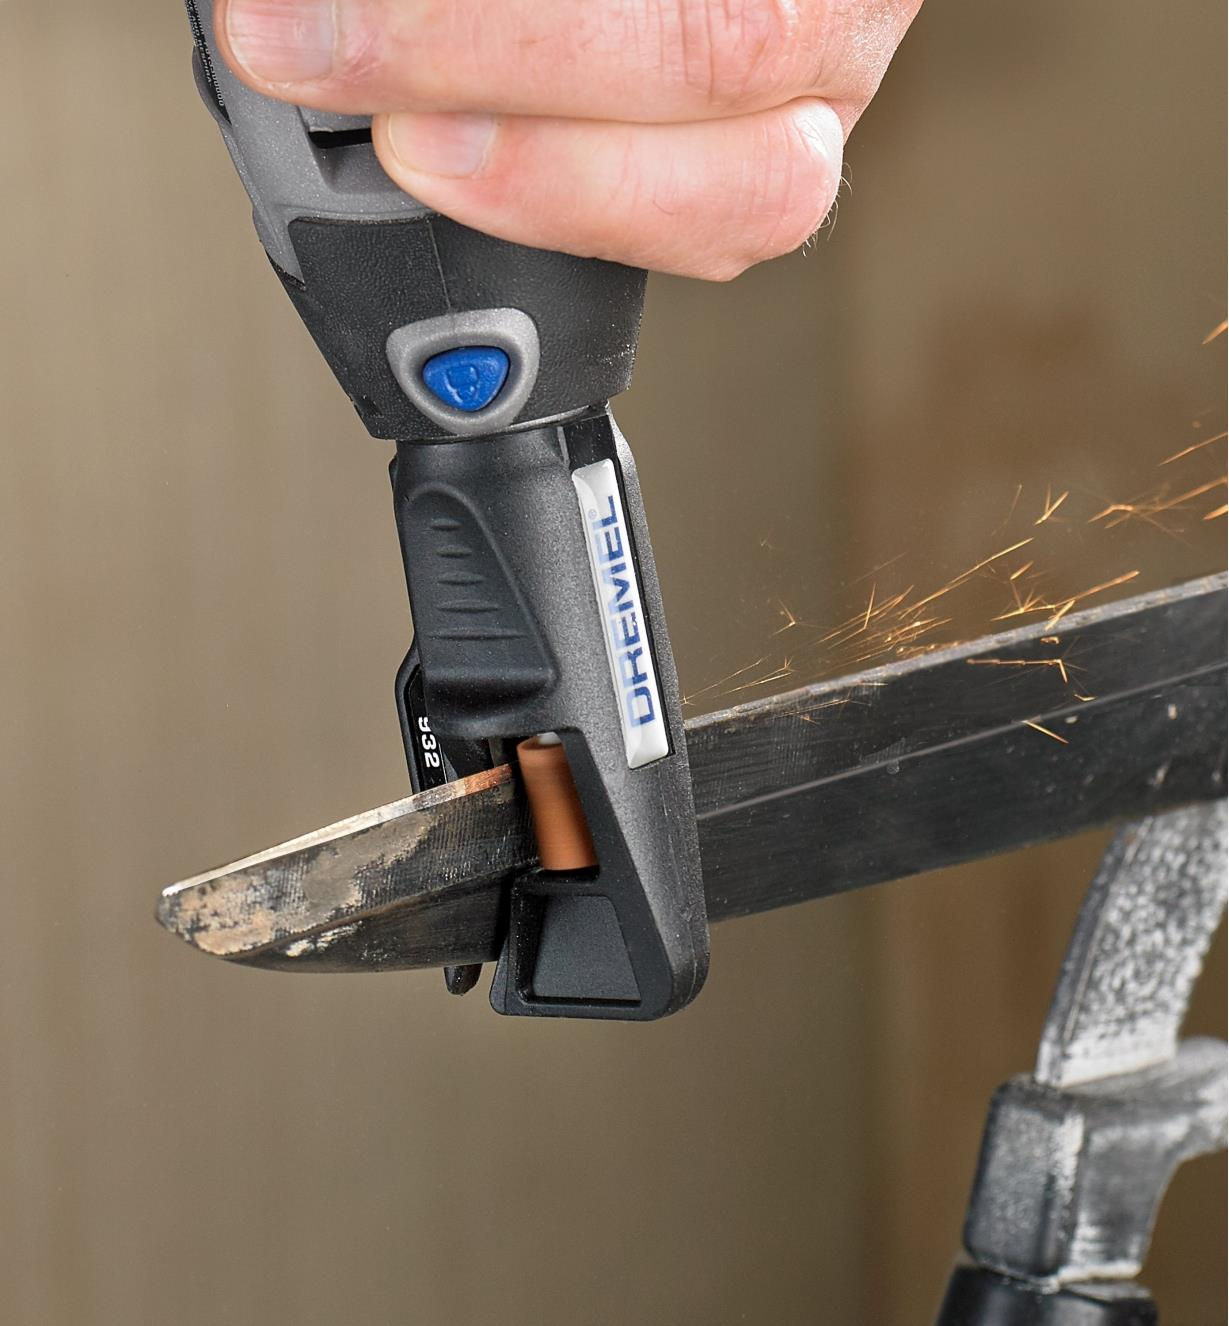 Sharpening a garden shears blade using a Dremel 3000 rotary tool with the garden tool sharpener attachment